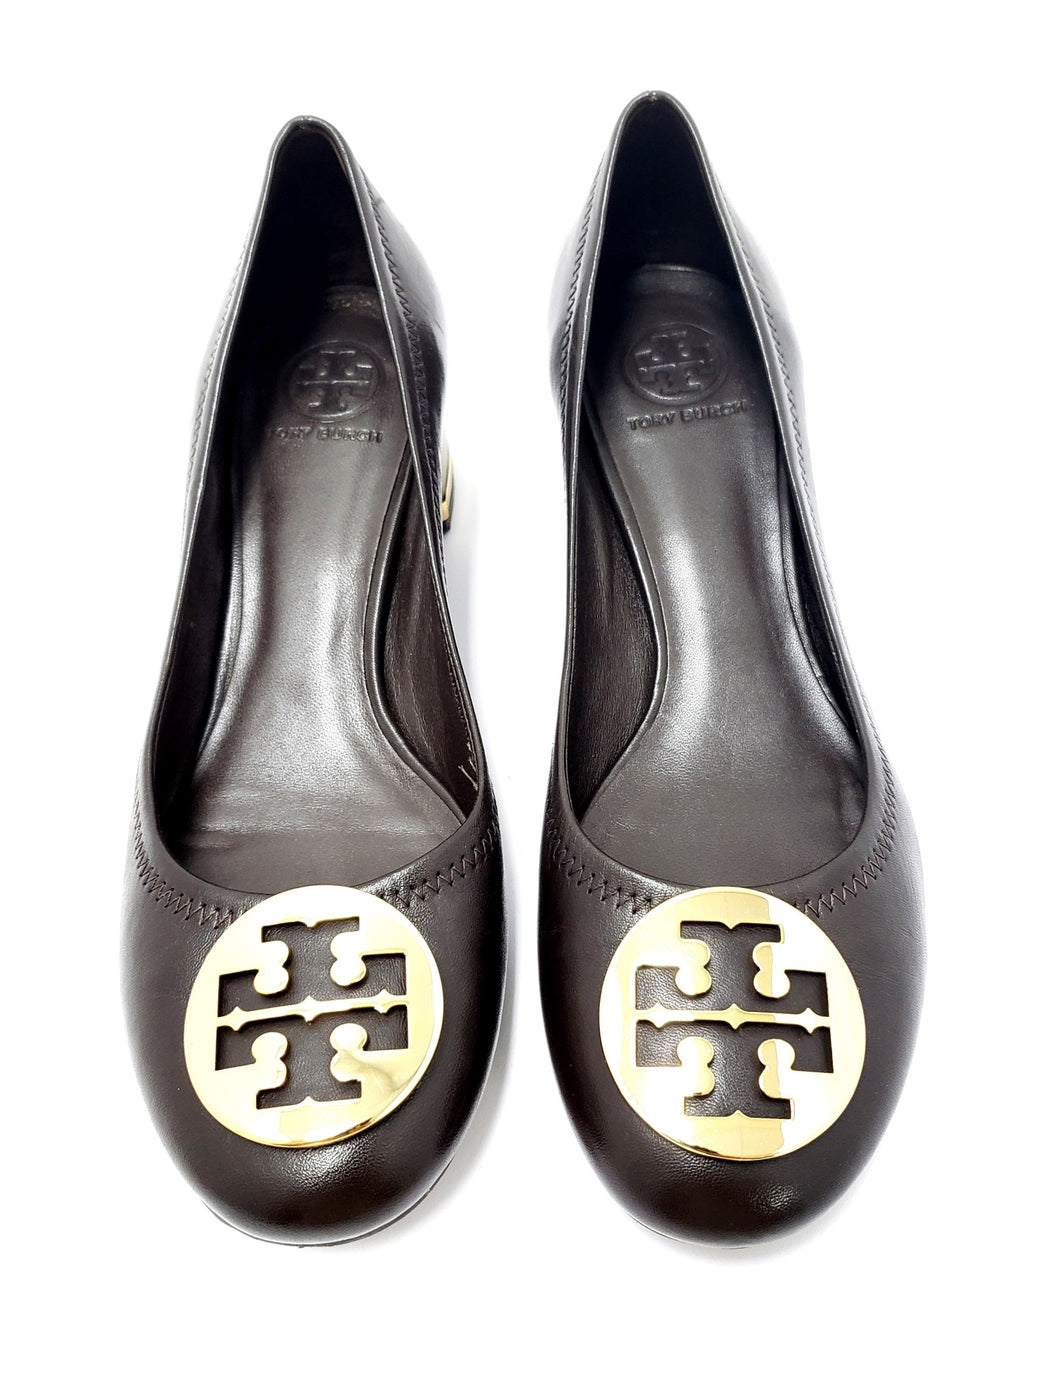 Tory Burch Wood Block Heels 11M